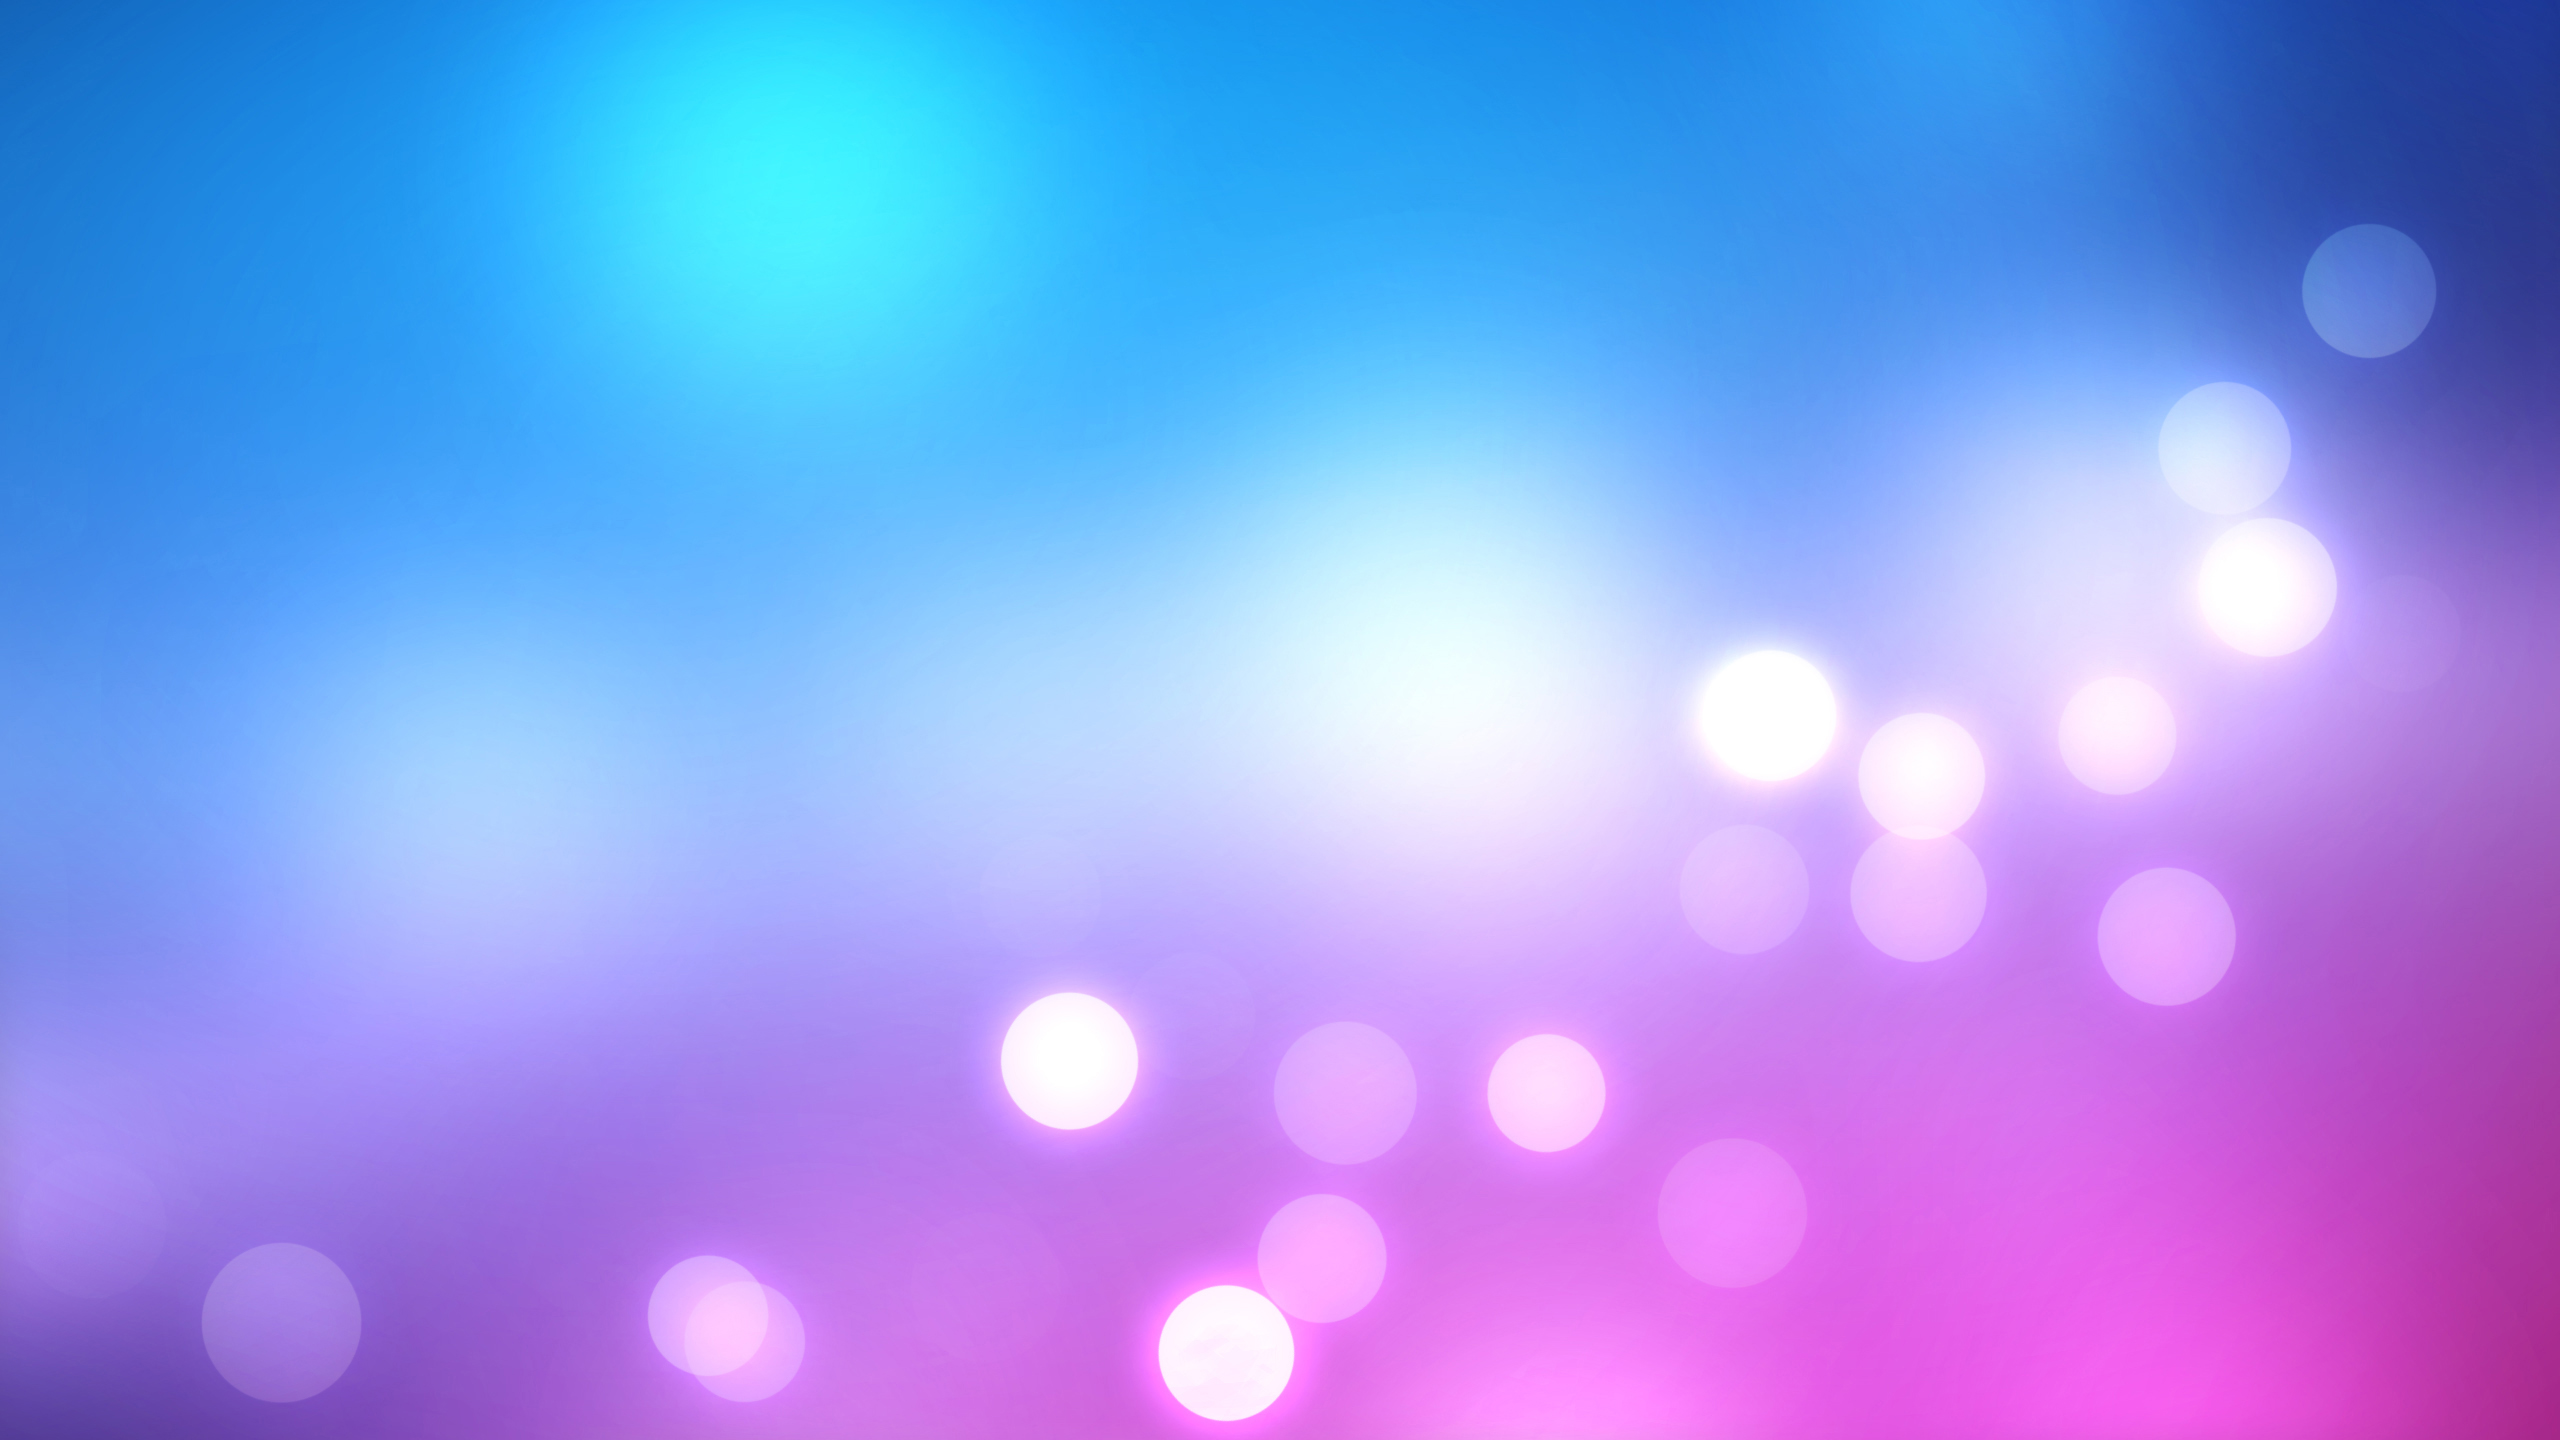 Purple and blue wallpapers images amp pictures becuo